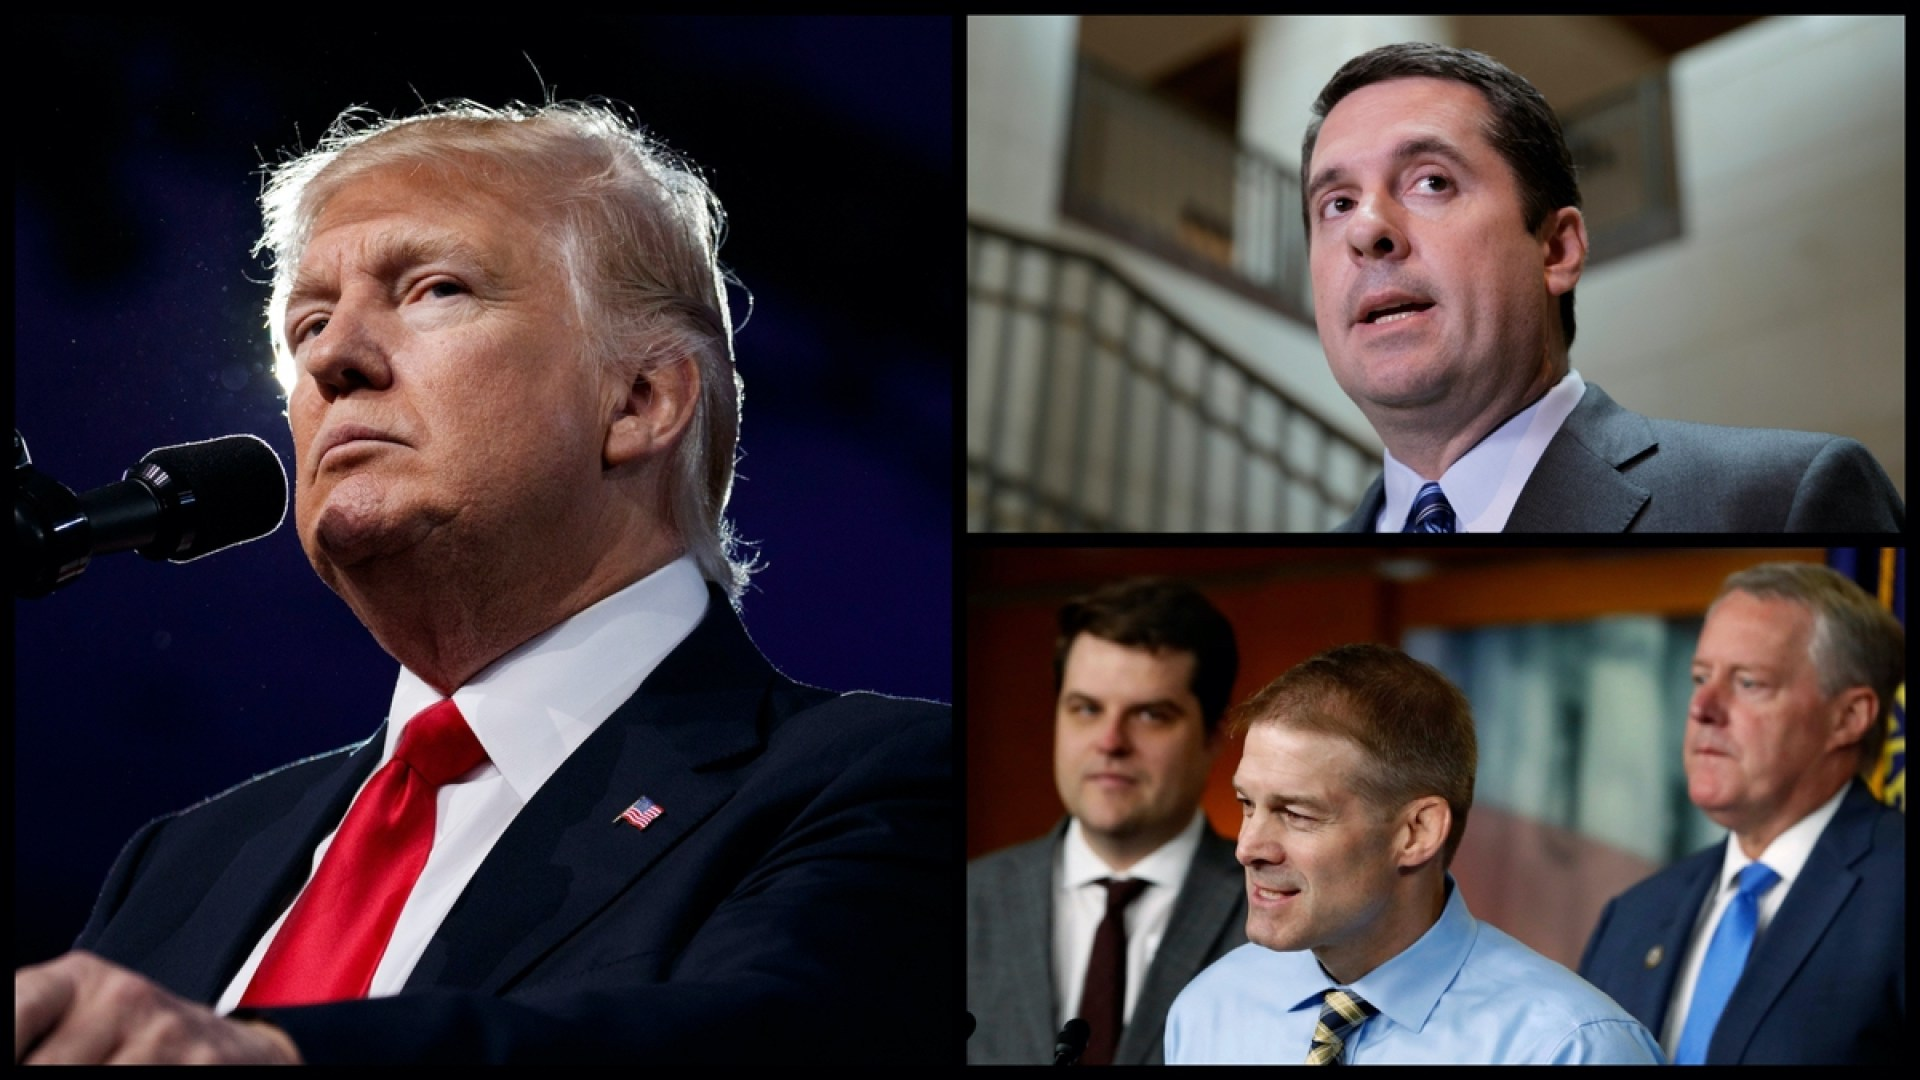 From Left: President Donald Trump, Ranking House Intelligence Committee Member Rep. Devin Nunes (R-CA), House Freedom Caucus Members Rep. Matt Gaetz (R-FL), Rep. Jim Jordan (R-OH), and Chairman Rep. Mark Meadows (R-NC) - (AP Photo)